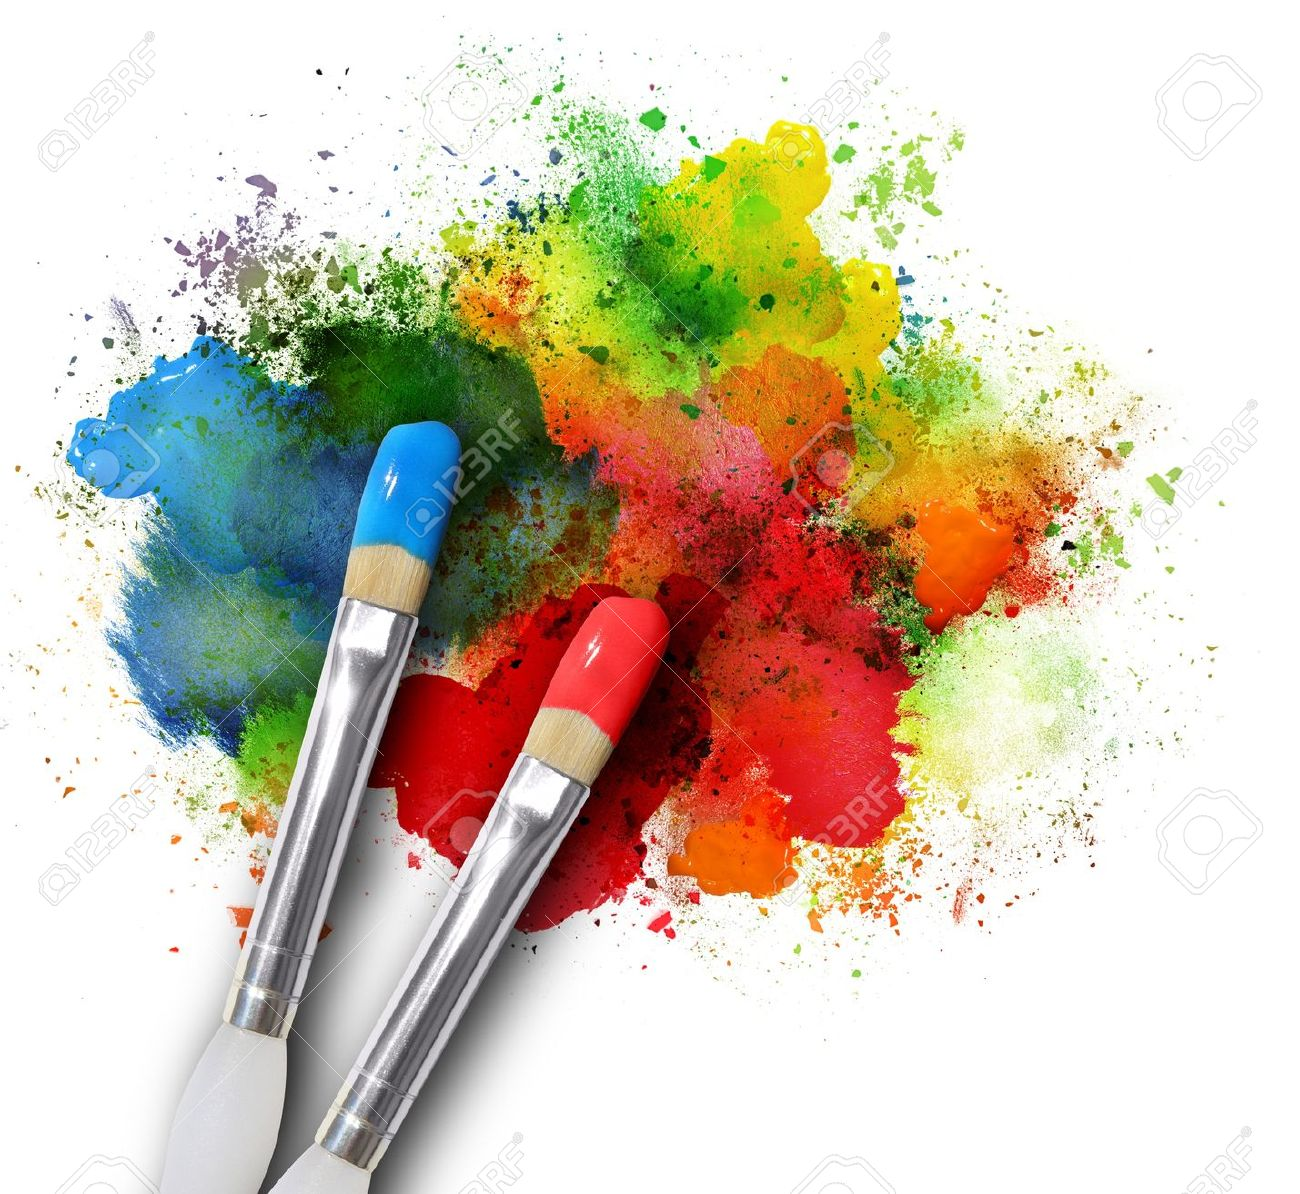 Arte Definition Francais Two Paintbrushes Are Painting A Rainbow Splattered Art Project